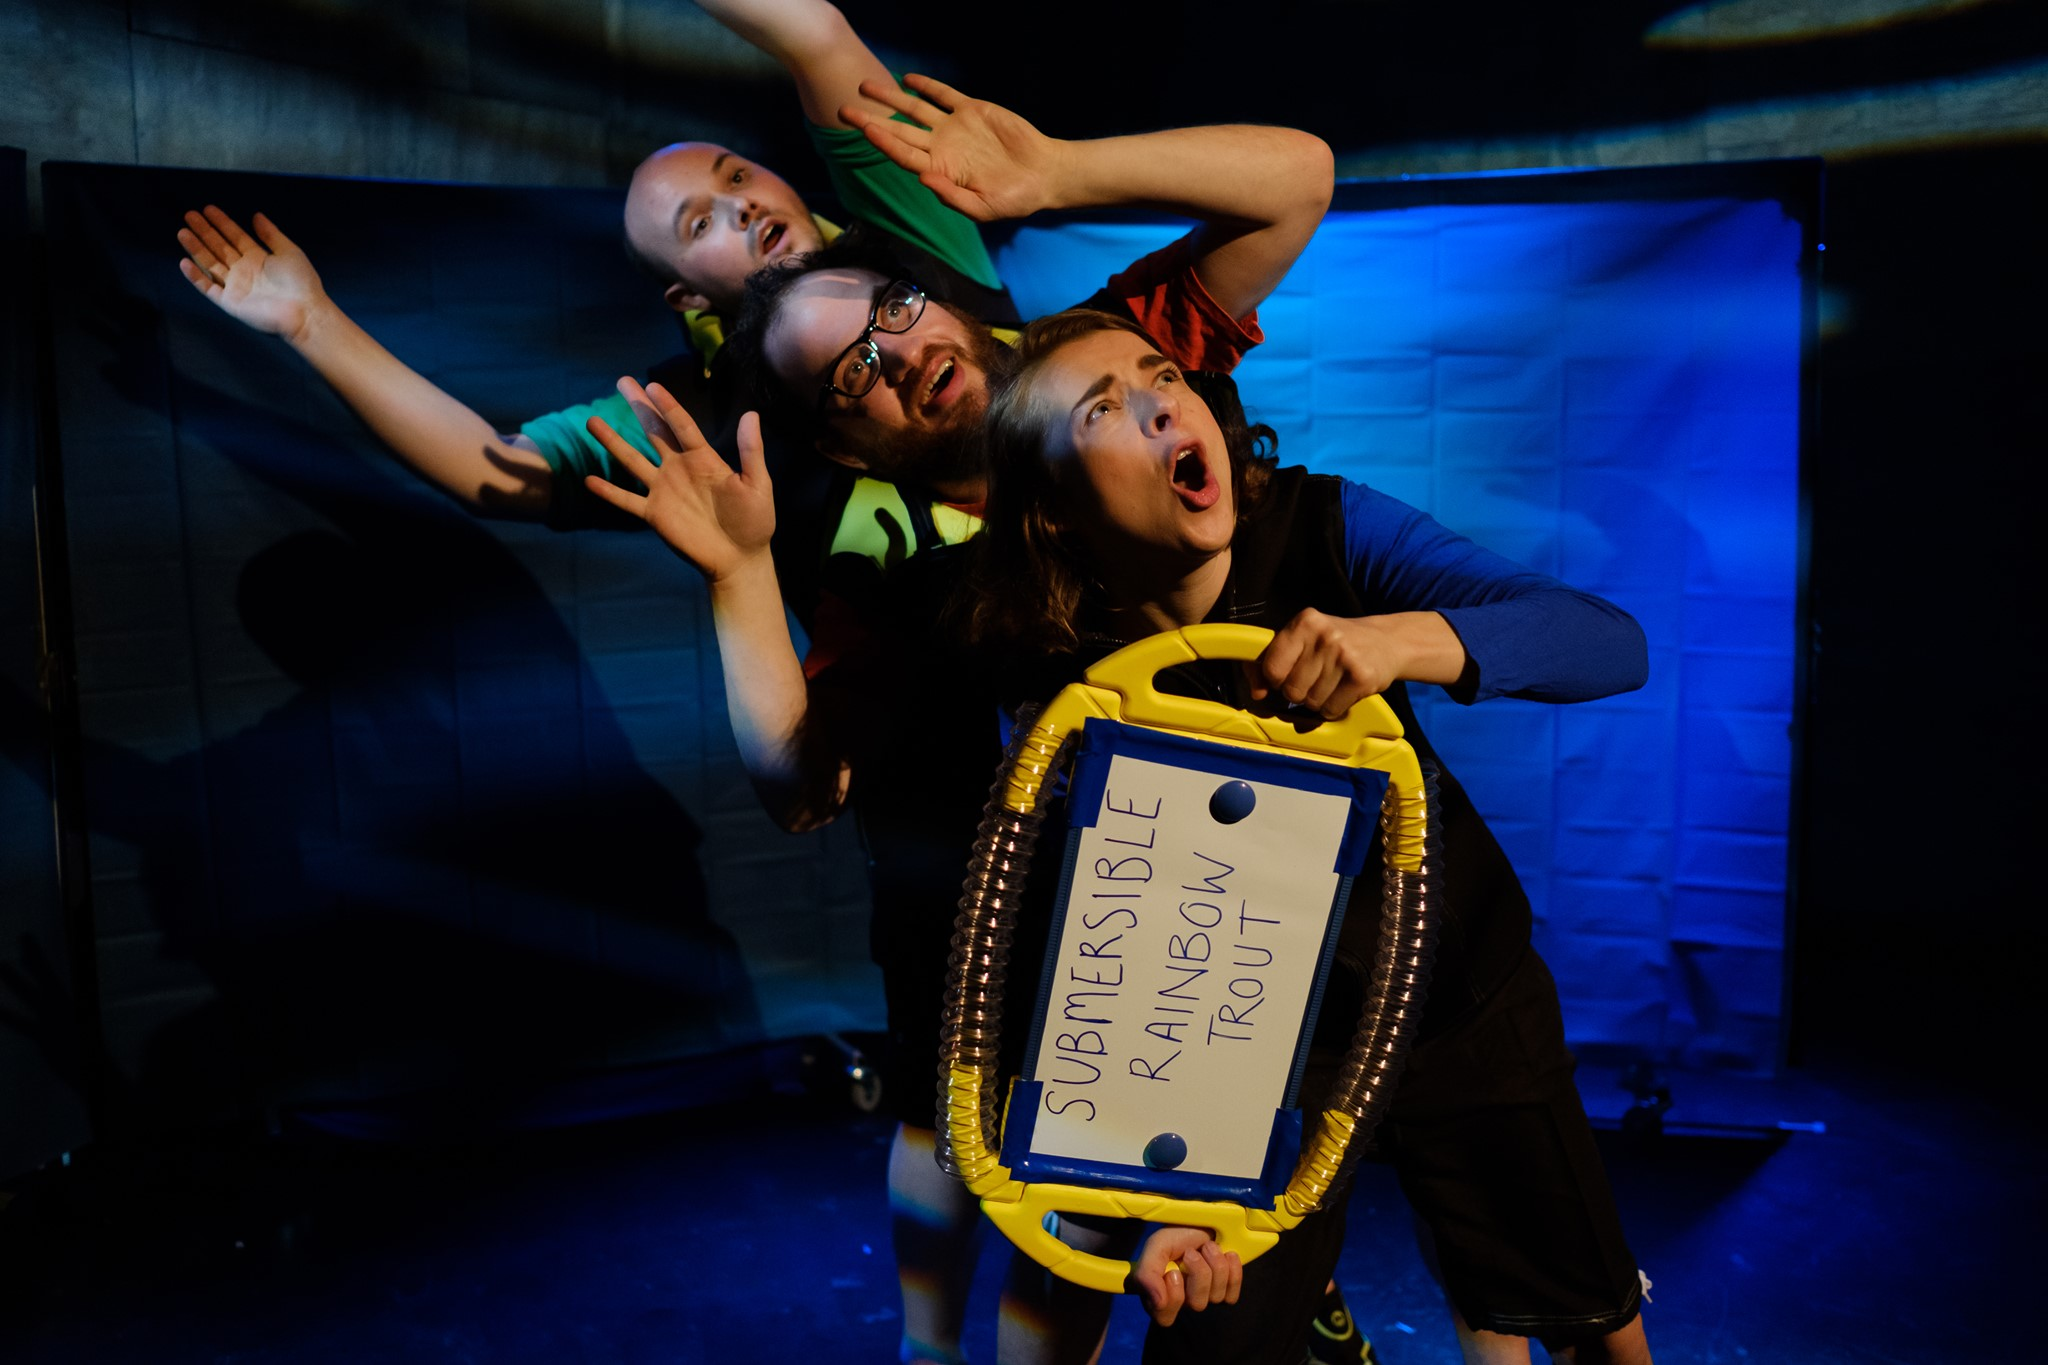 An image from the Deep Sea Seekers production showing the three actors